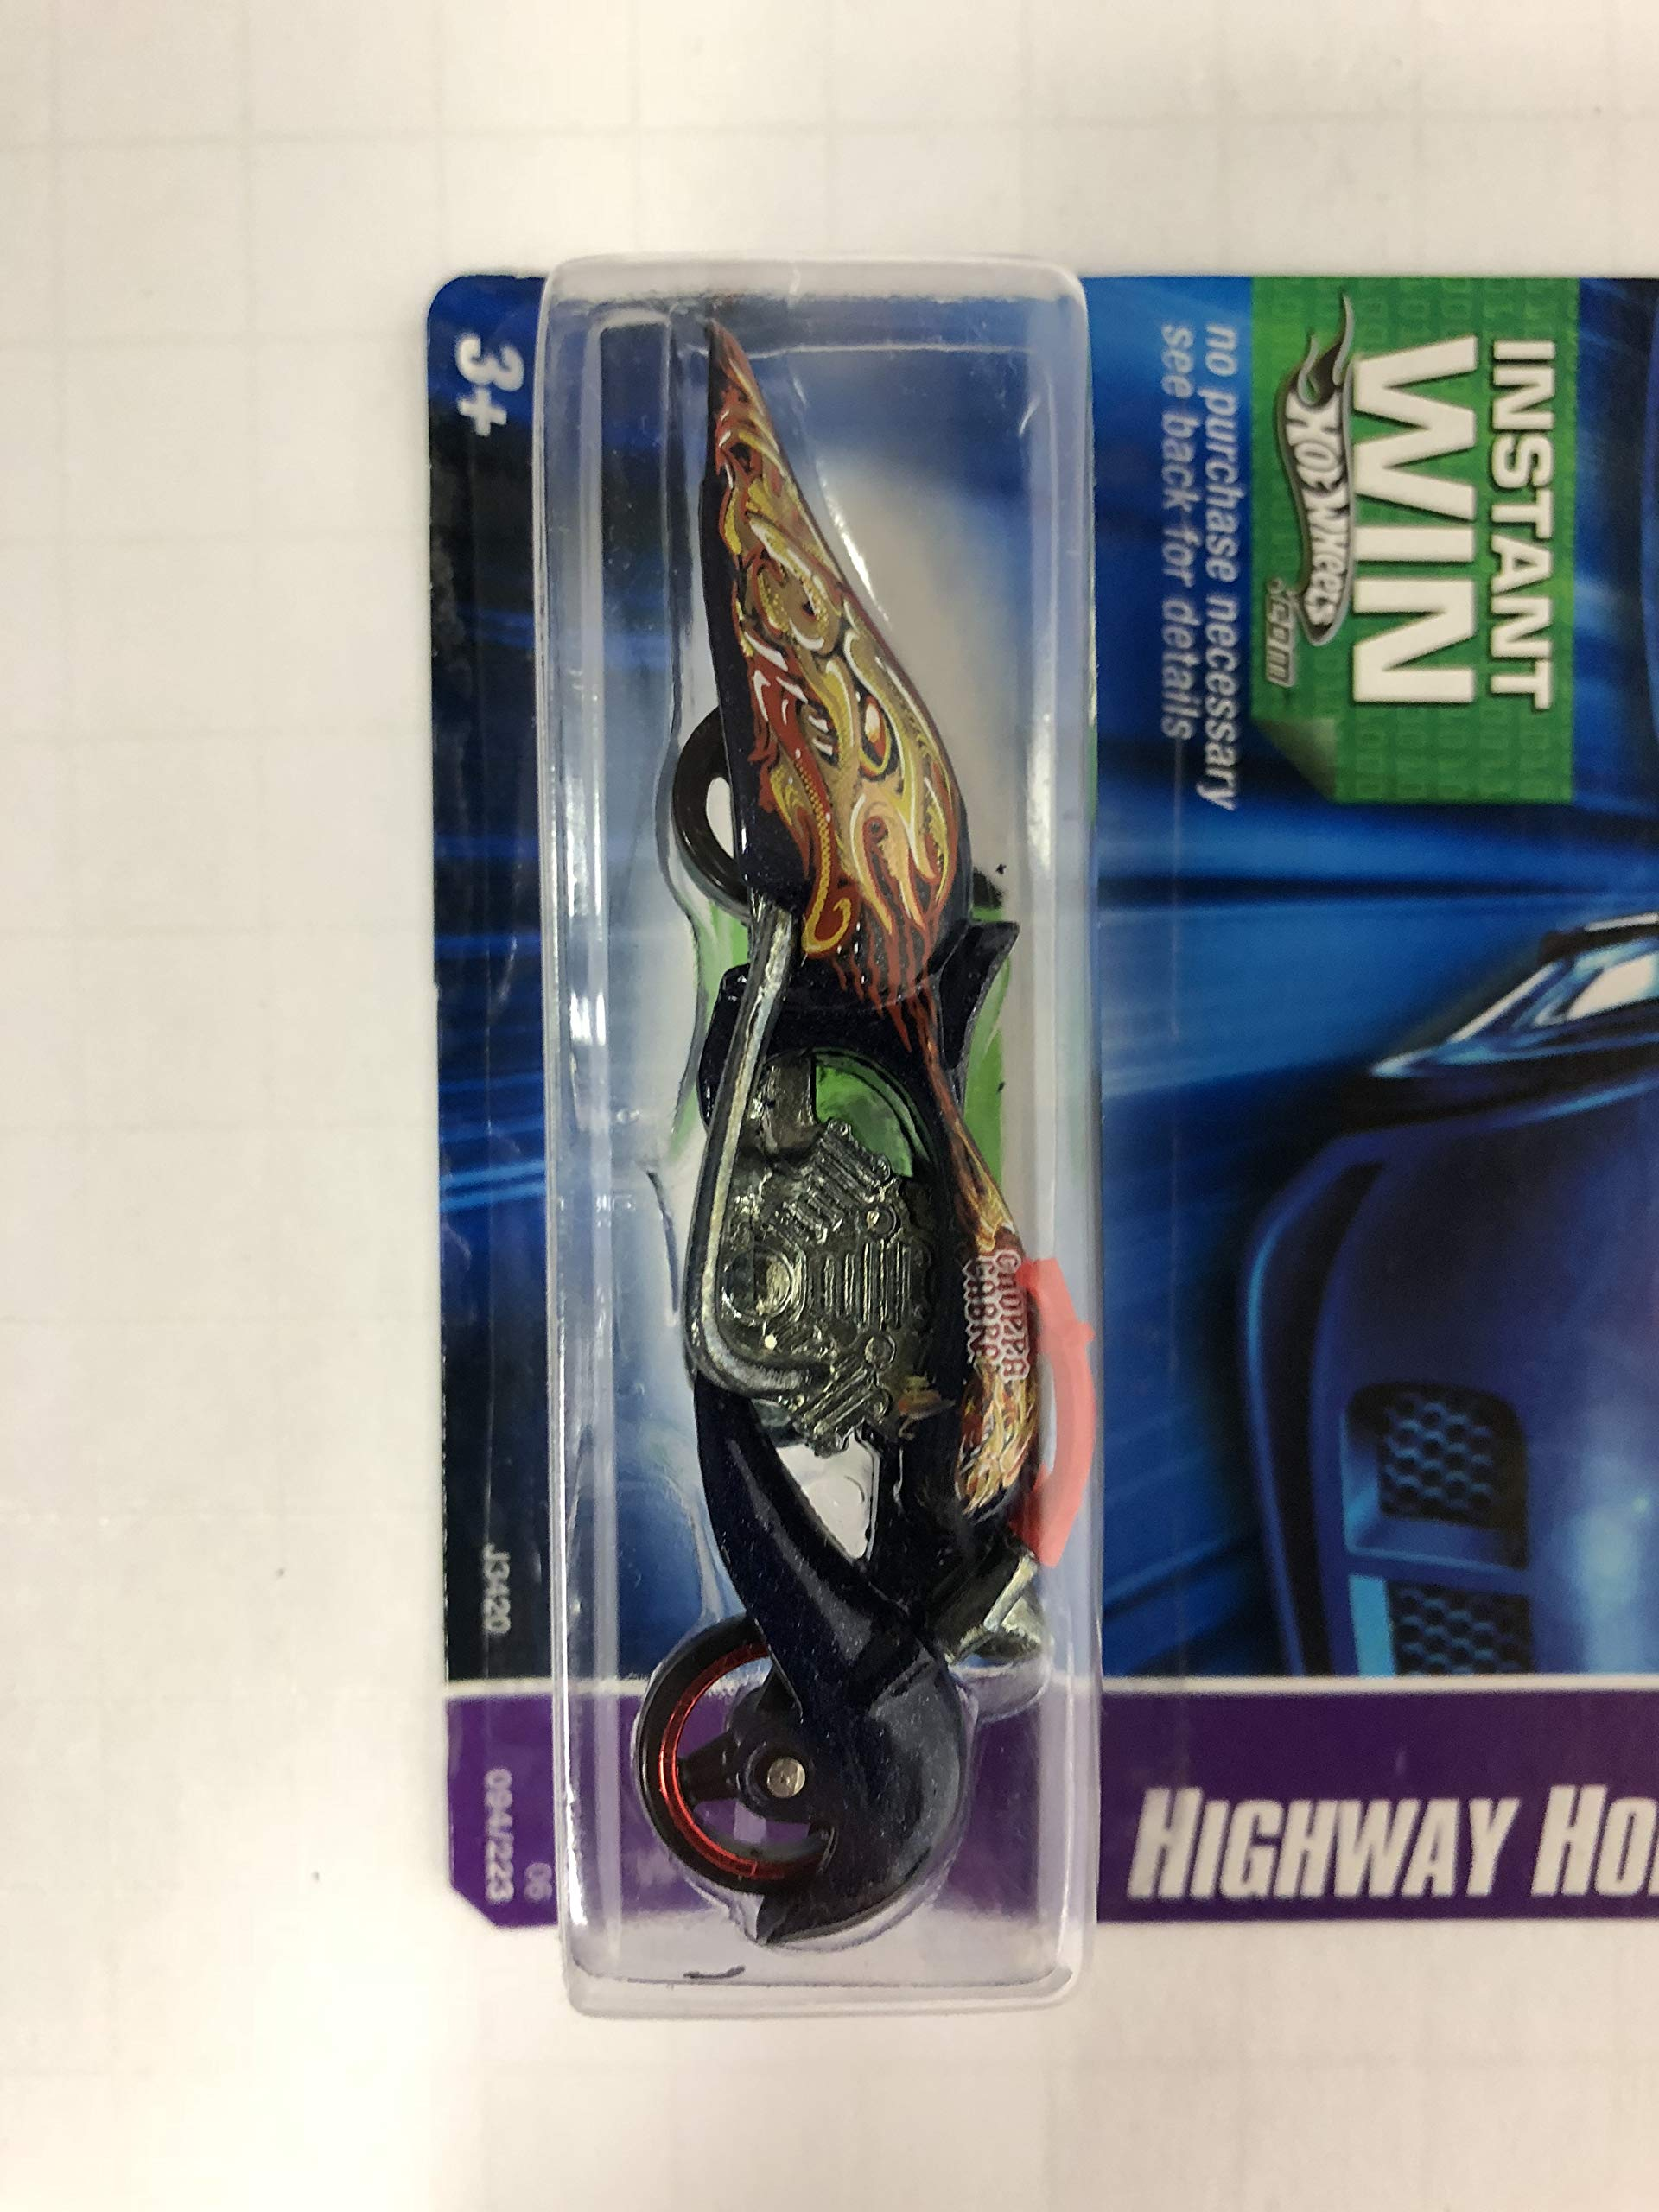 W Oozie Highway Horror No. 094 Hot Wheels 2006 1/64 scale diecast car